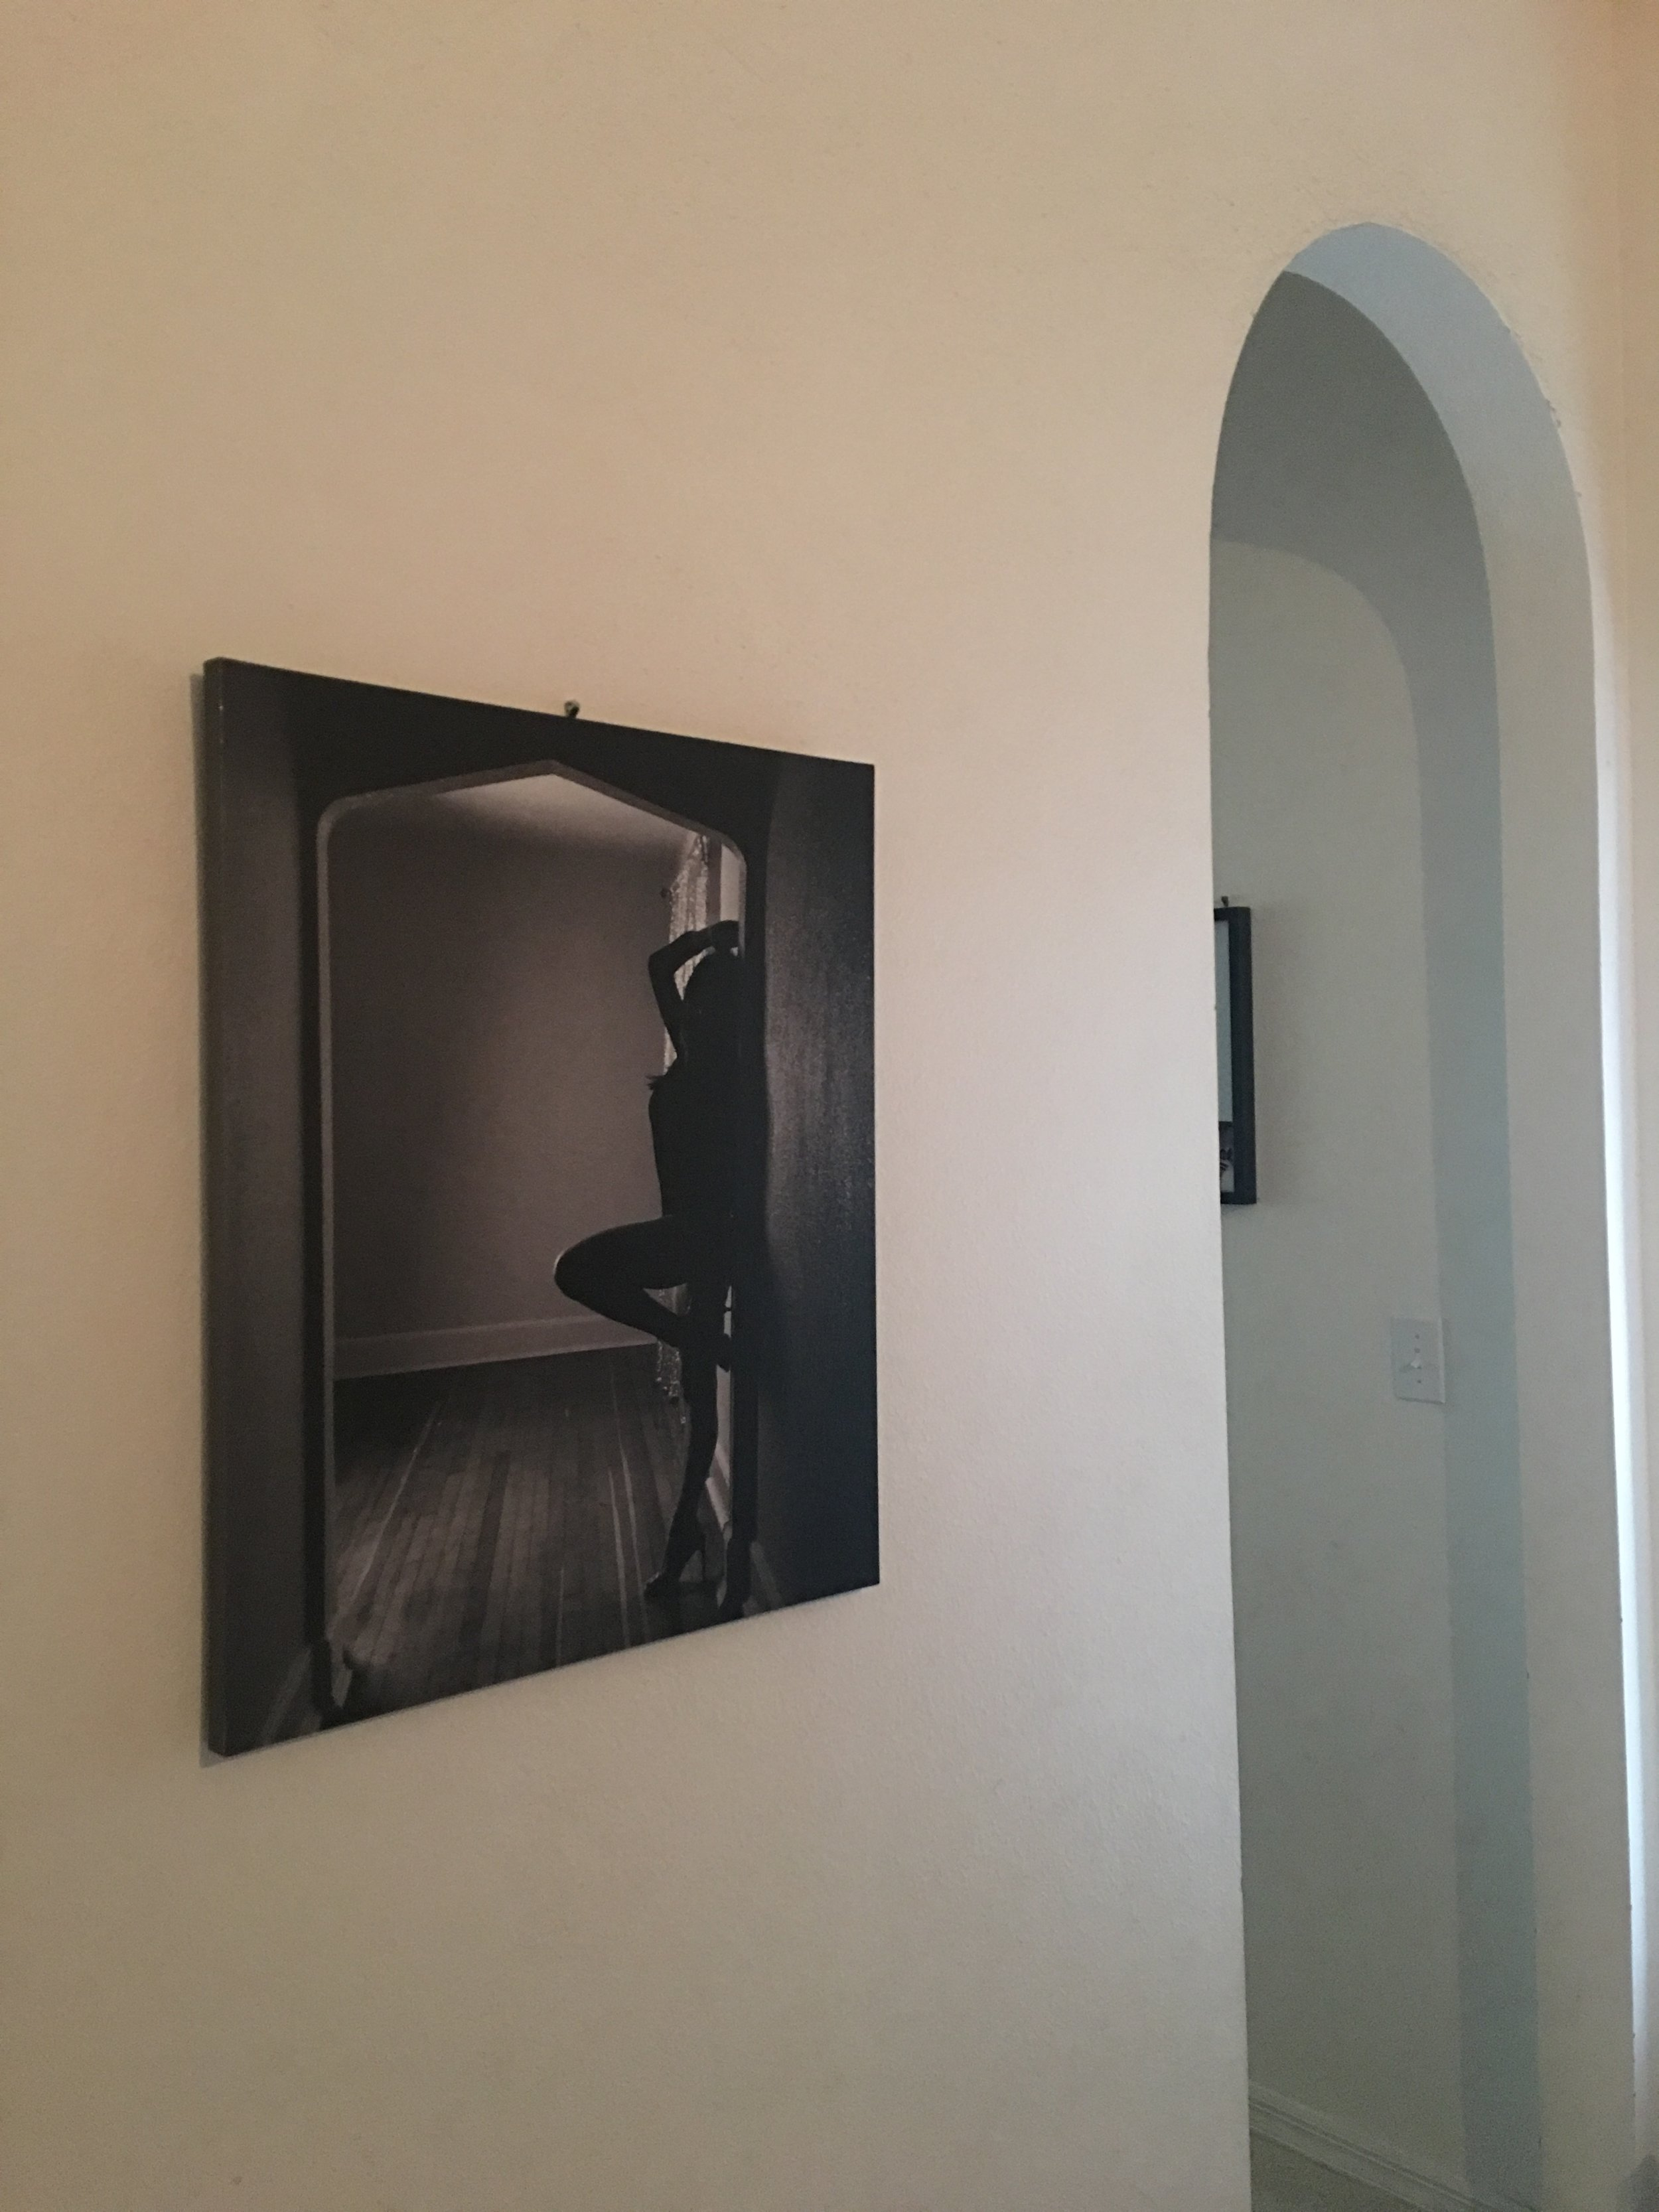 Speaking of wall art, - silhouettes and bodyscapes make excellent wall art and still give you some anonymity.